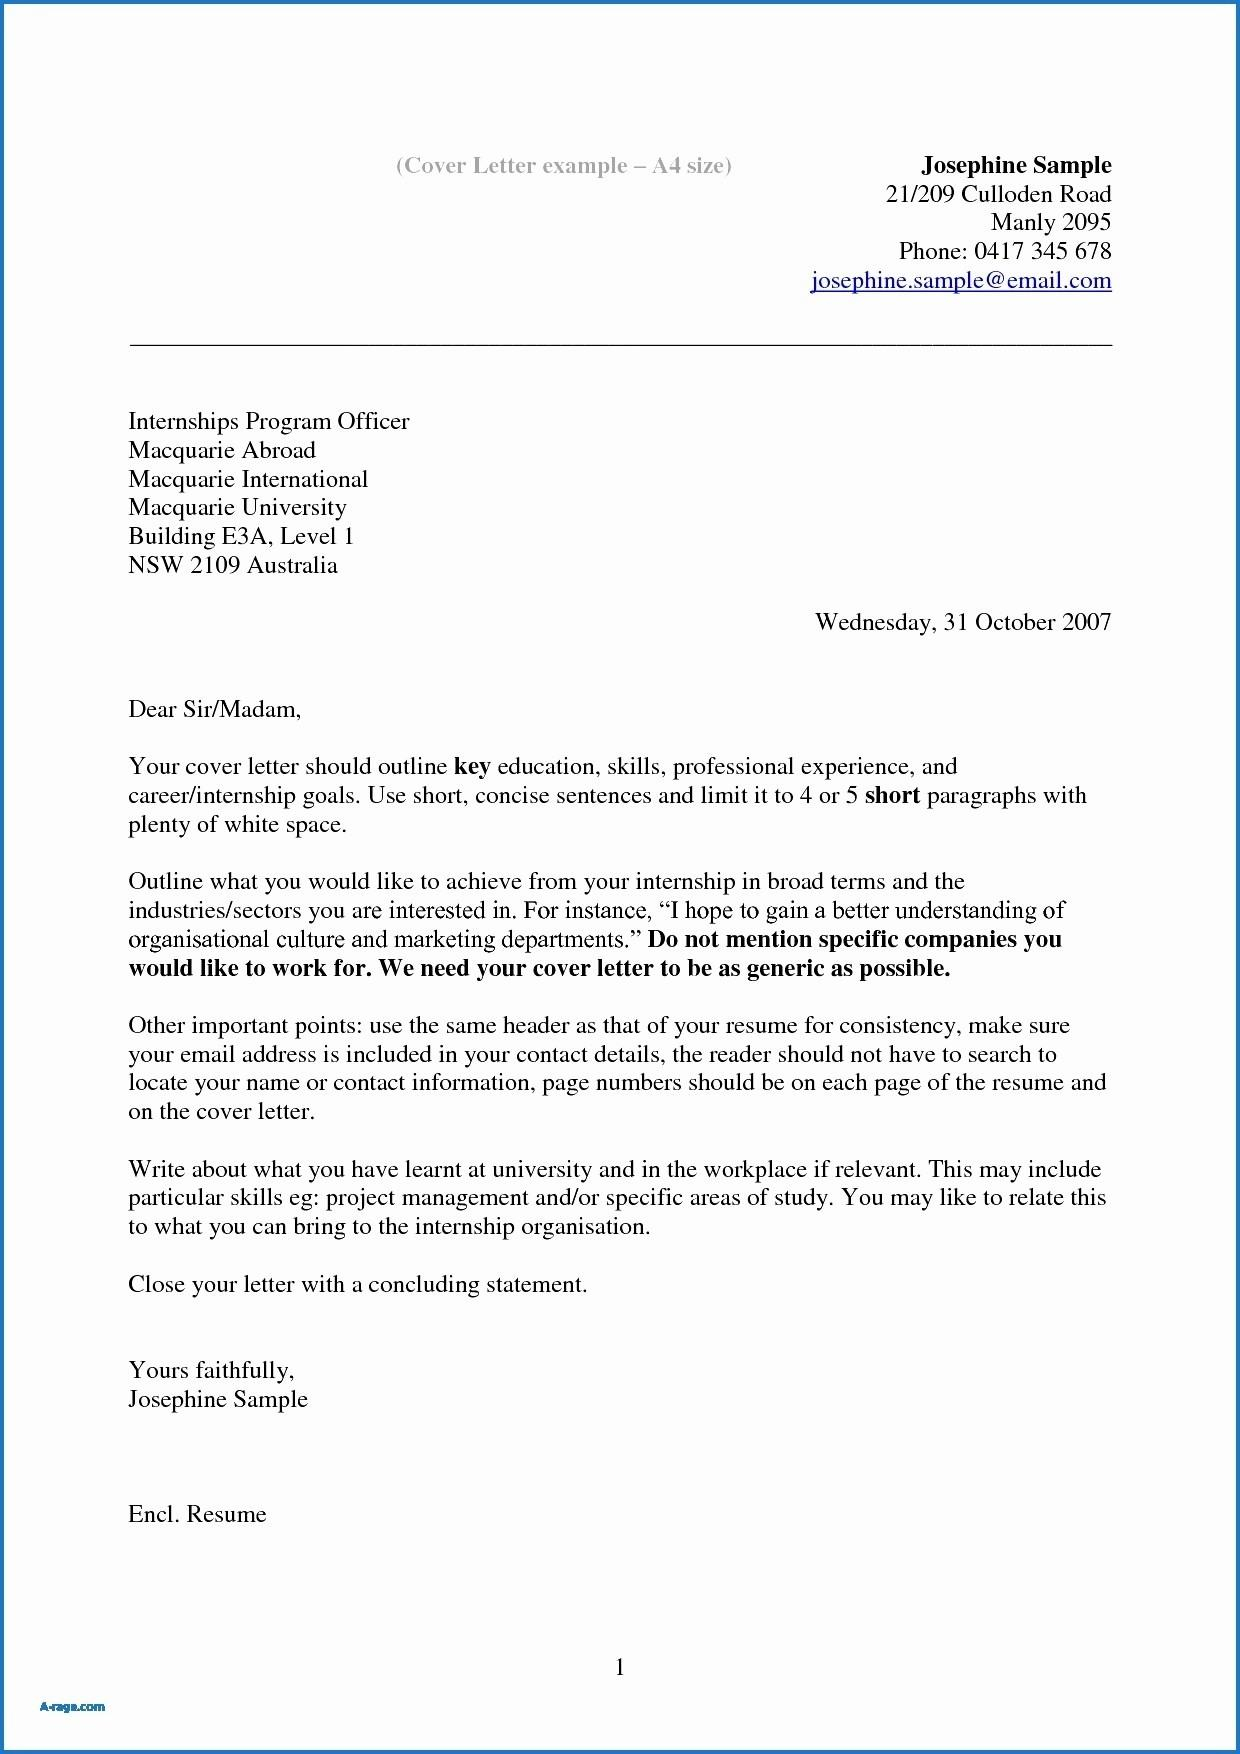 Help Desk Cover Letter Template - Help Desk Cover Letter Beautiful Help Desk Resume Examples Awesome